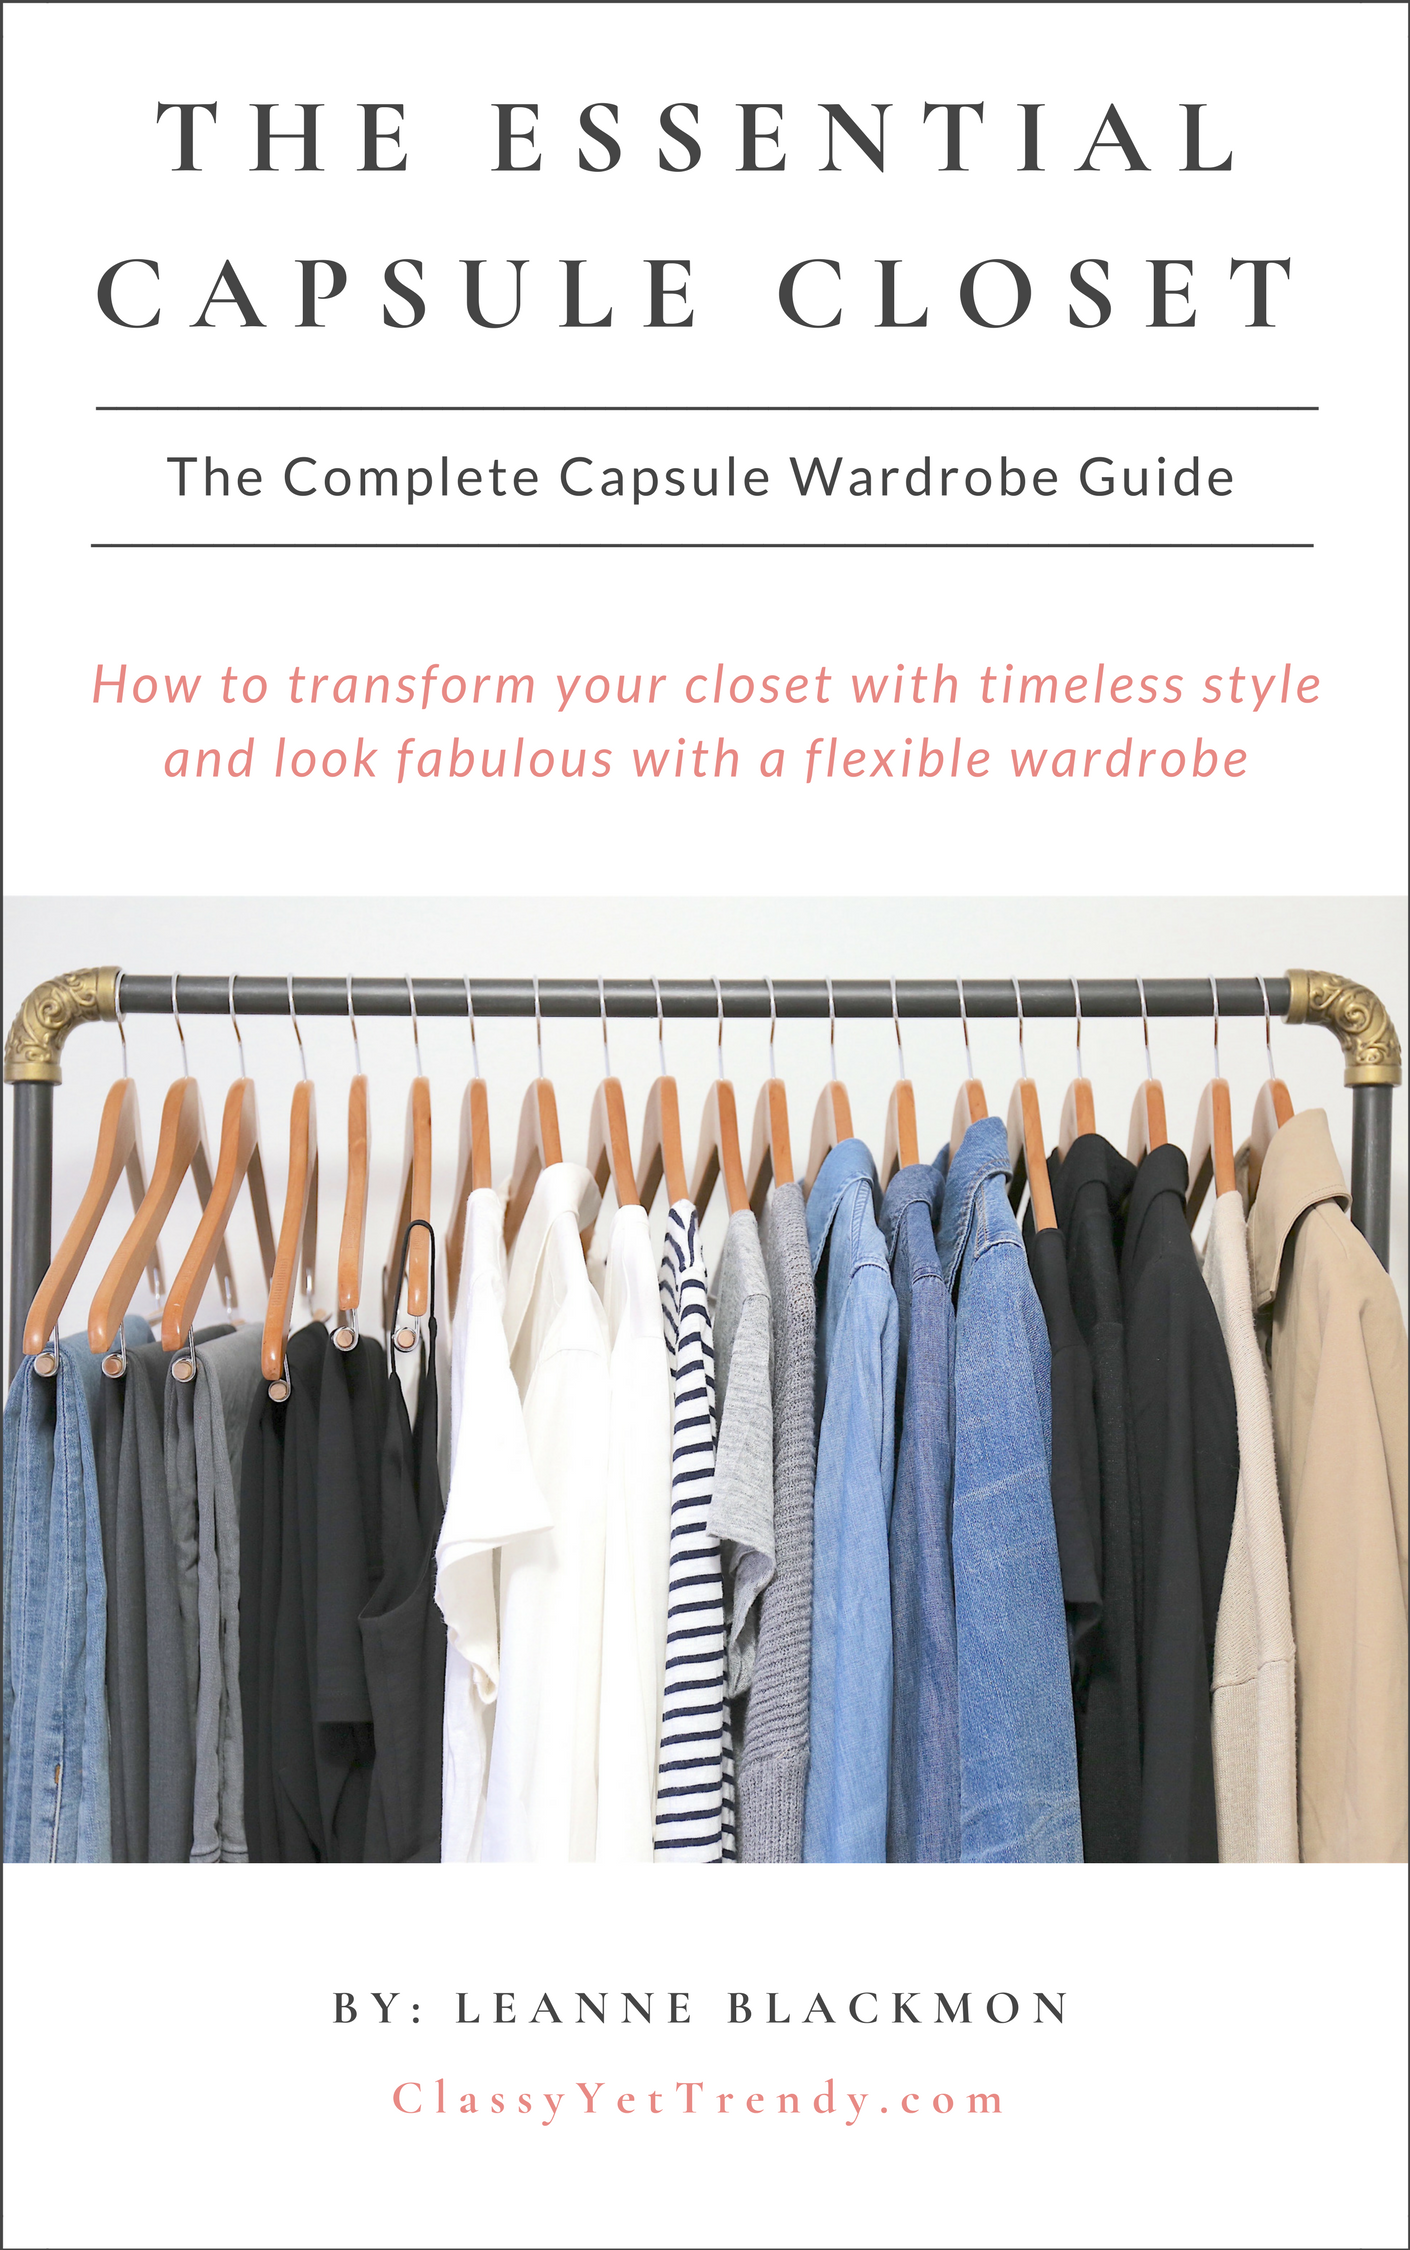 The Essential Capsule Closet